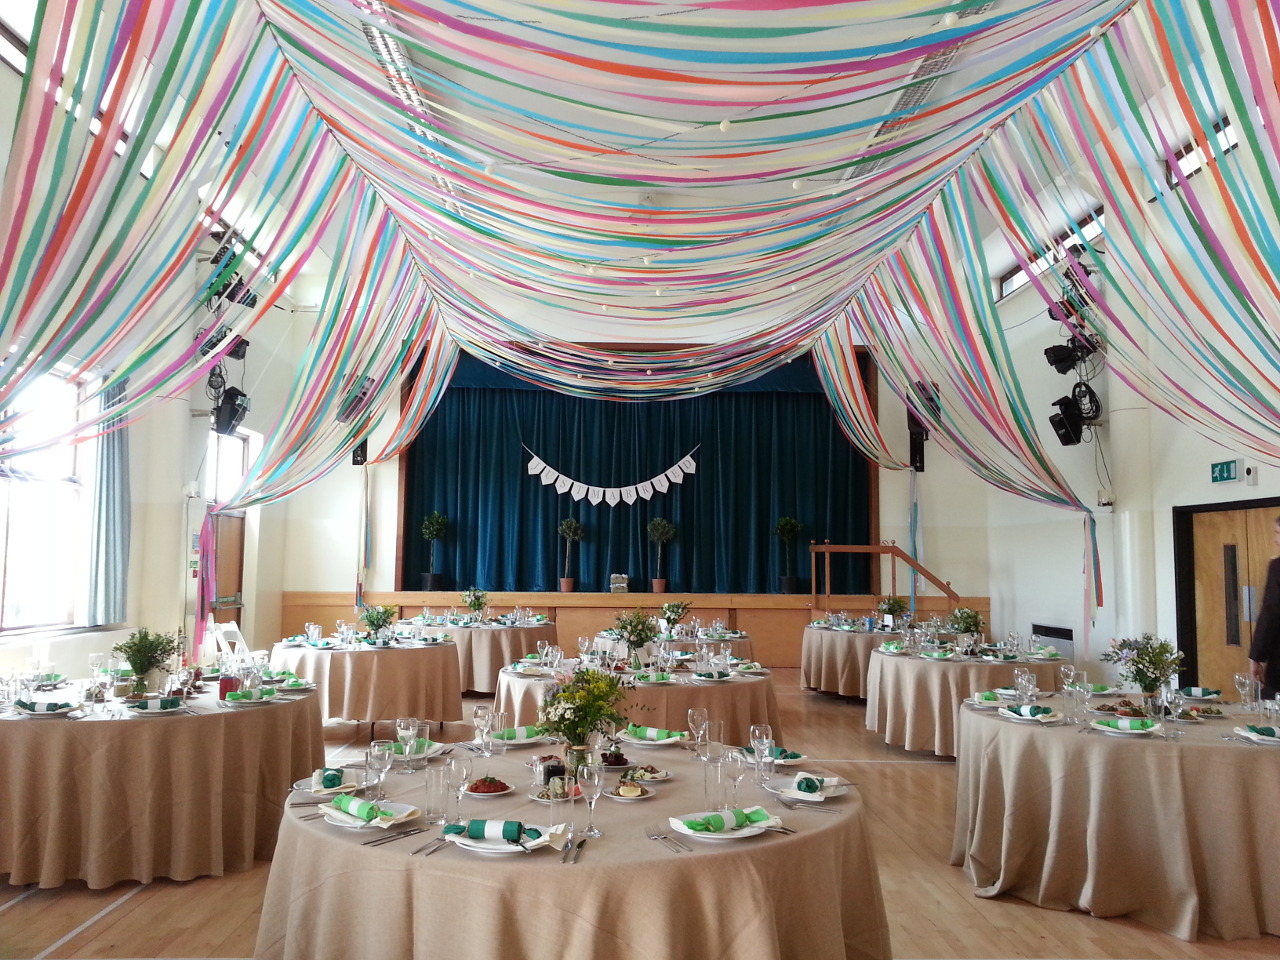 colourful-ribbon-canopy-wedding -reception-town-village-hall-celebration-beautiful-oculux-lighting-guests2 & Colourful Ribbon Canopy Wedding - Oculux | Immersive Light